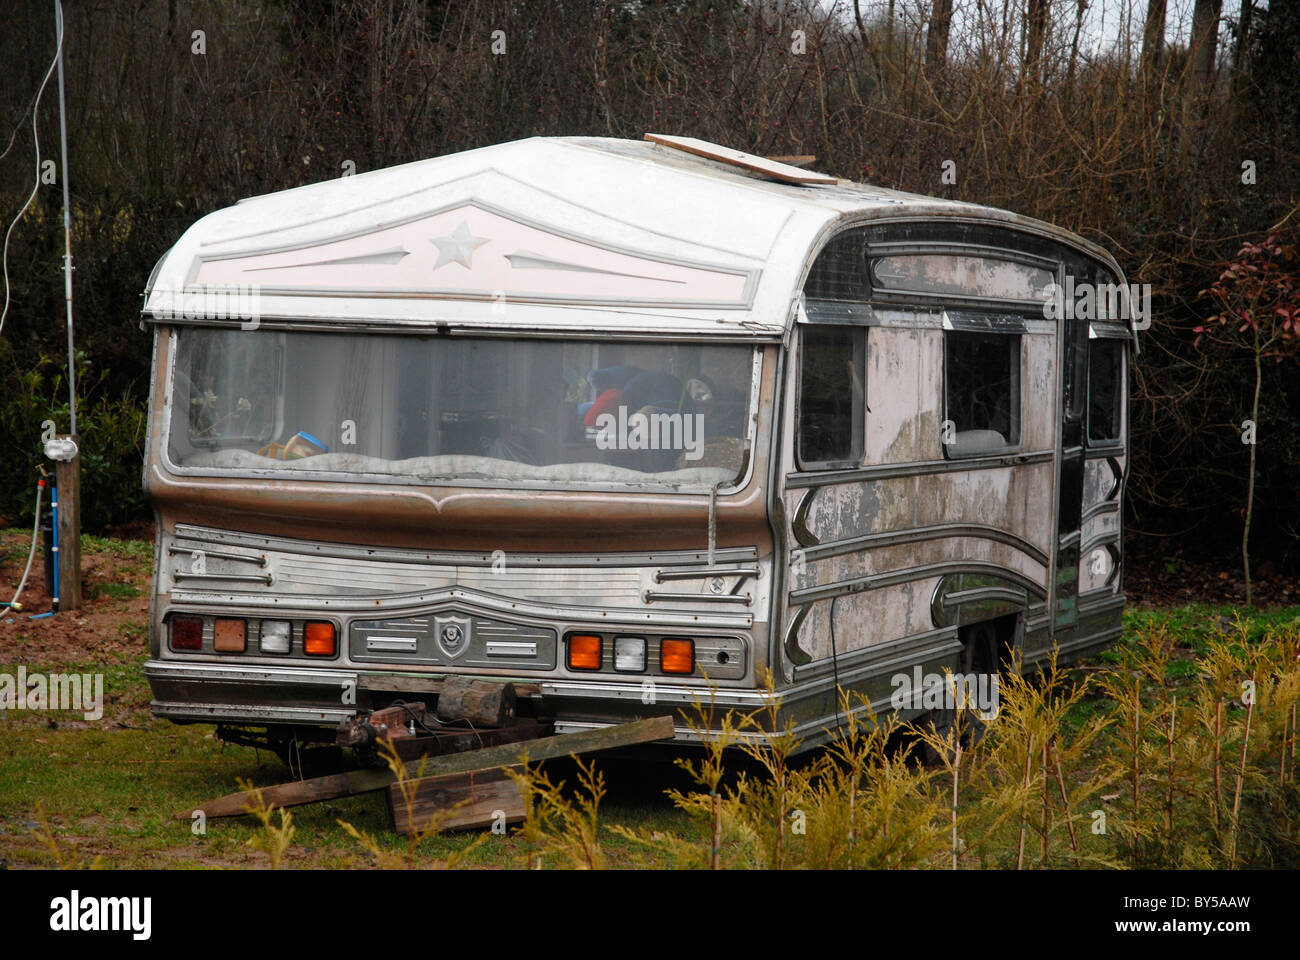 Fantastic The Irish Travellers, Sometimes Called Pavees, Are An Ethnically Irish Nomadic Community In England, They Live In Small, Tightknit Groups And Are Characterized As Living On Caravan Sites  An English Equivalent To A Trailer Park Because Of